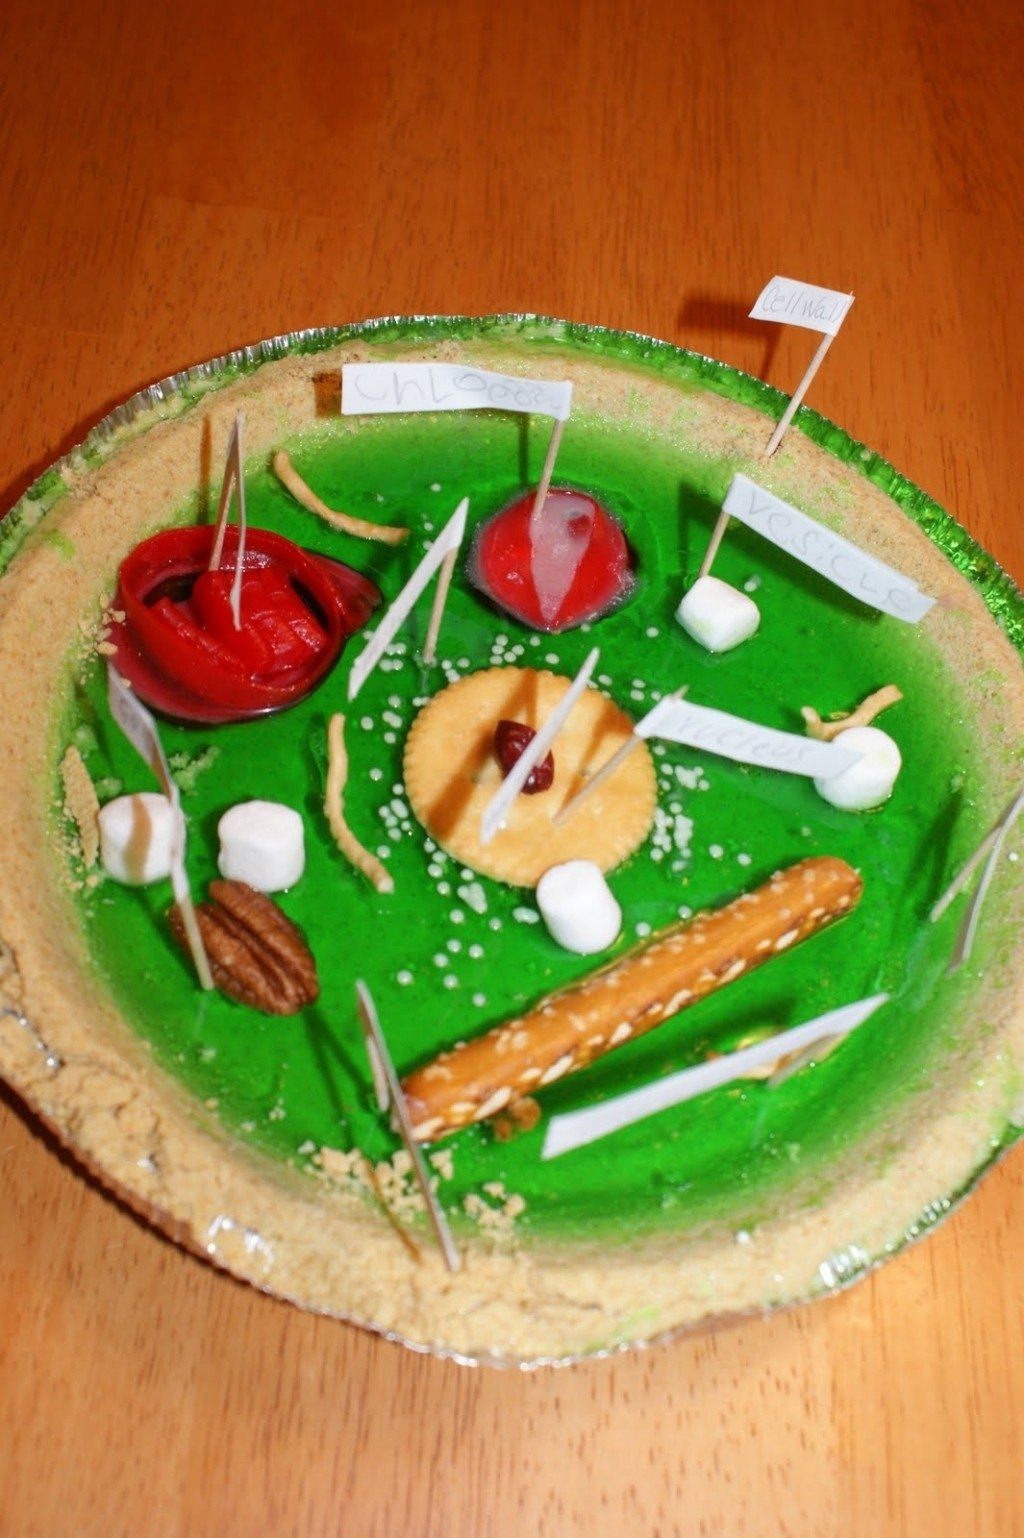 10 Ideal Edible Plant Cell Project Ideas 5 edible plant cell project ideas in cell biological science 2 2020